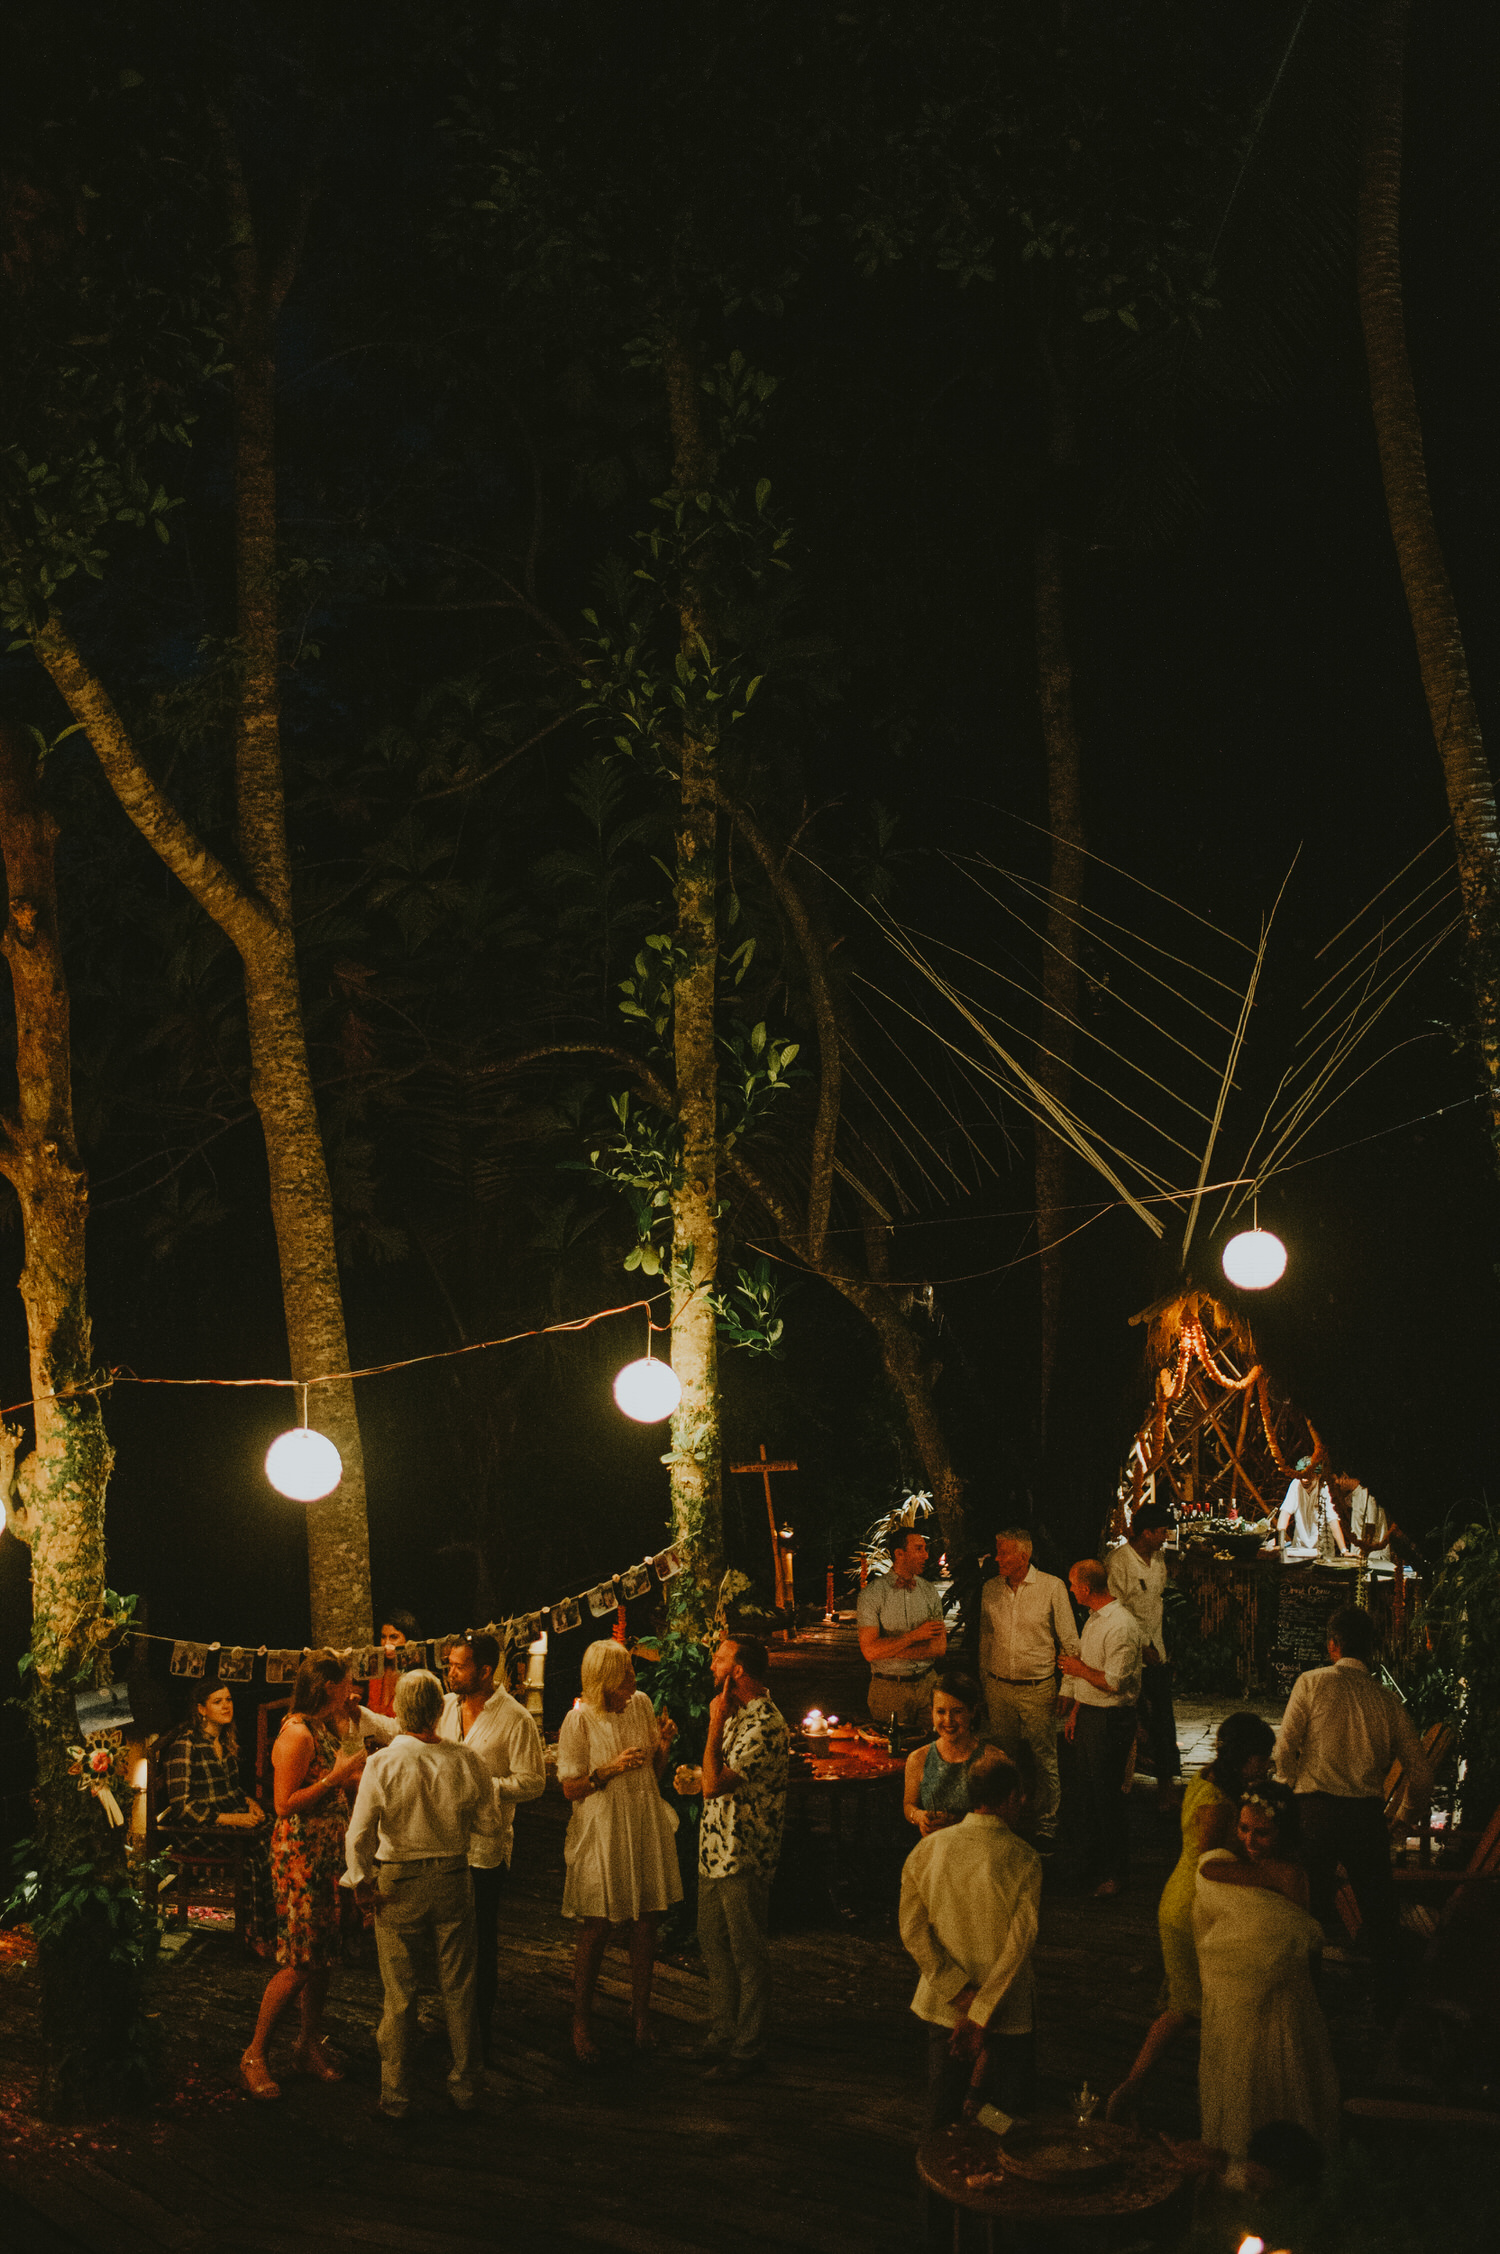 bali-wedding-ubud-wedding-wedding-destination-diktatphotography-kadek-artayasa-elaine-and-glenn-117